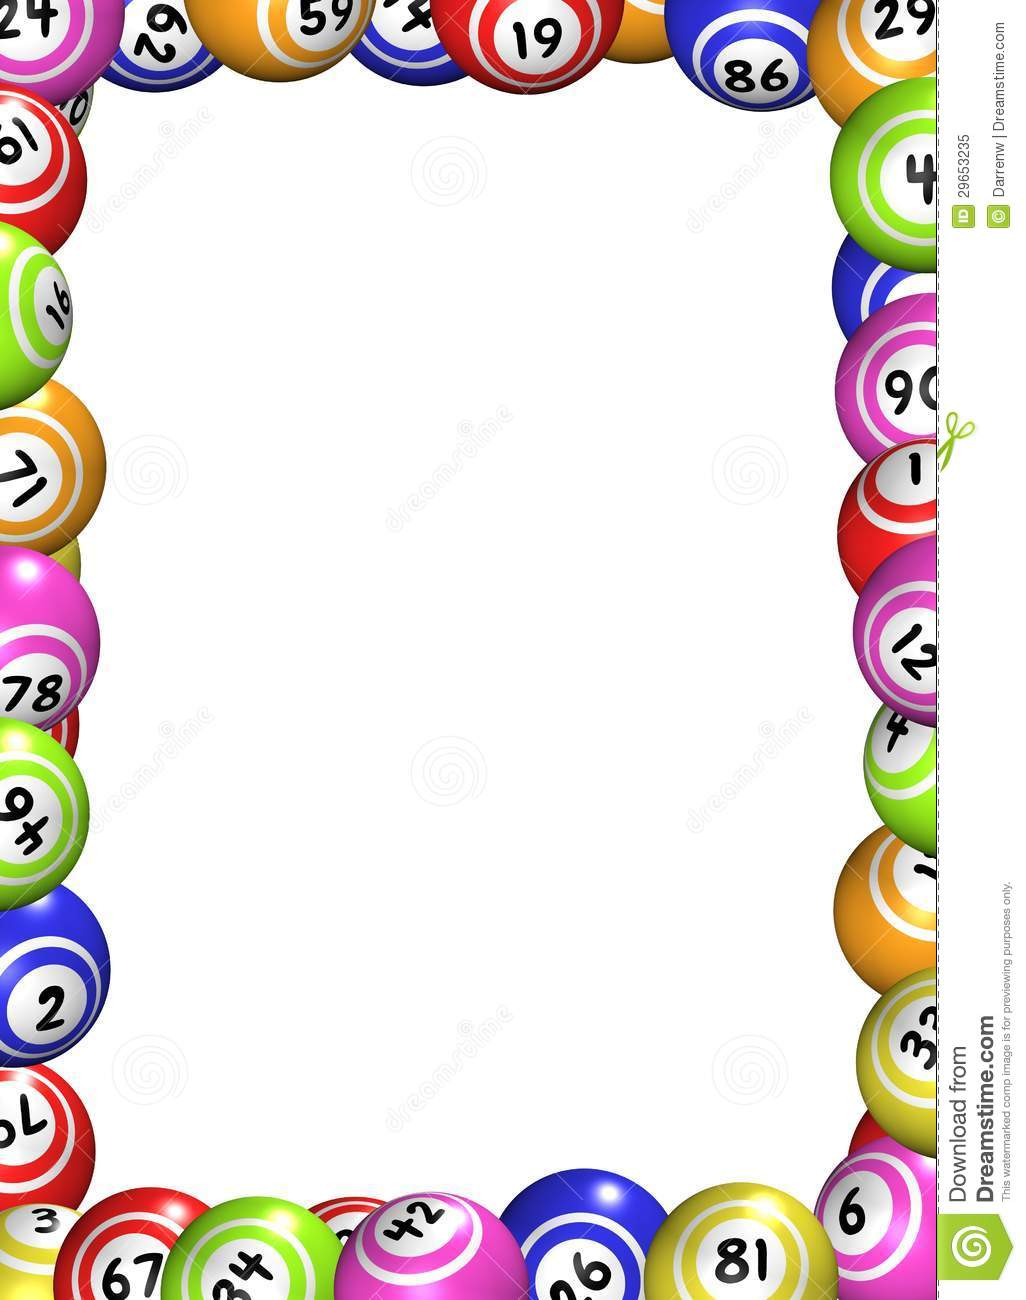 Bingo Balls Frame Stock Illustration Illustration Of Game